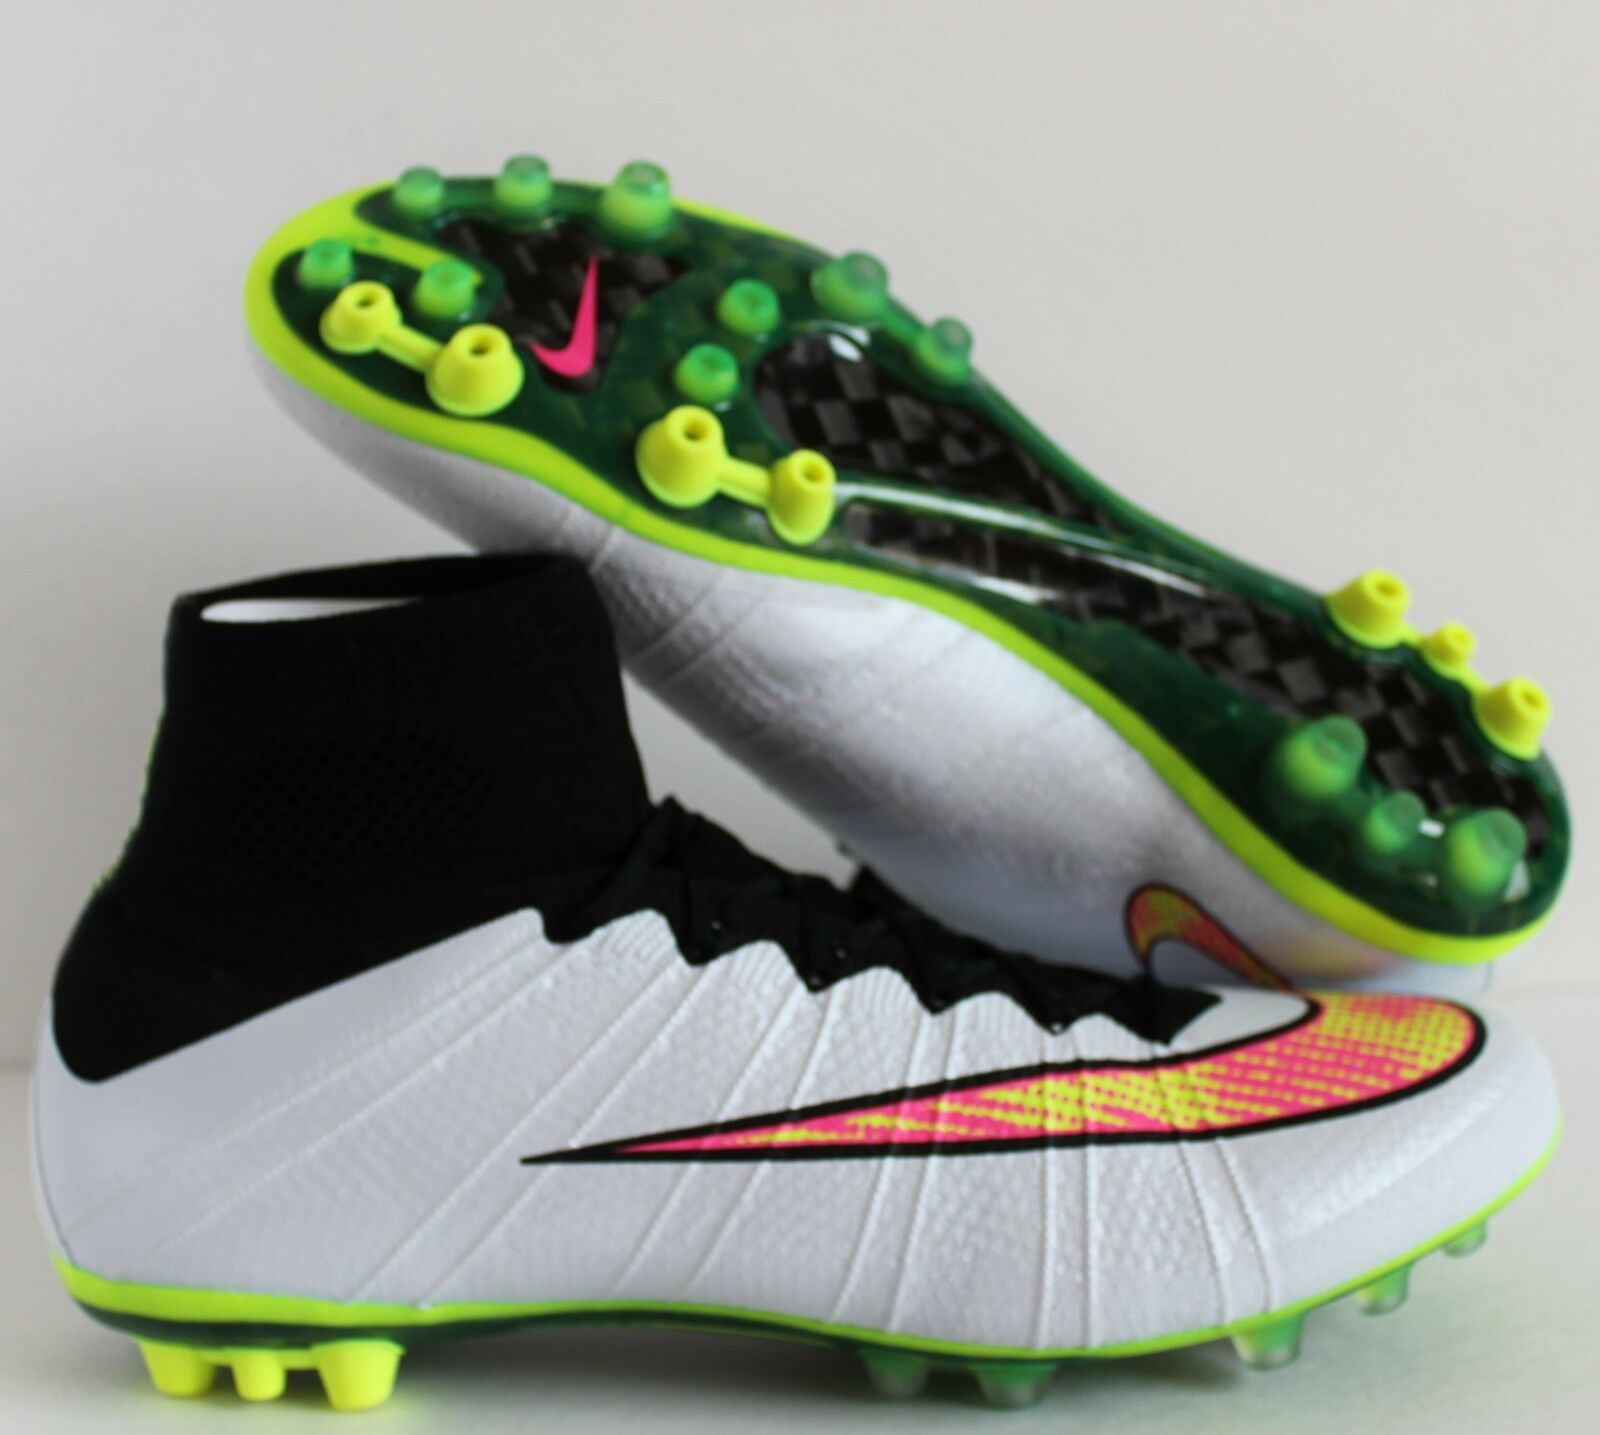 NIKE MERCURIAL SUPERFLY 12 AG-R WHITE-VOLT-BLACK-HYPER PINK SZ 12 SUPERFLY [717138-170] 8daaa5